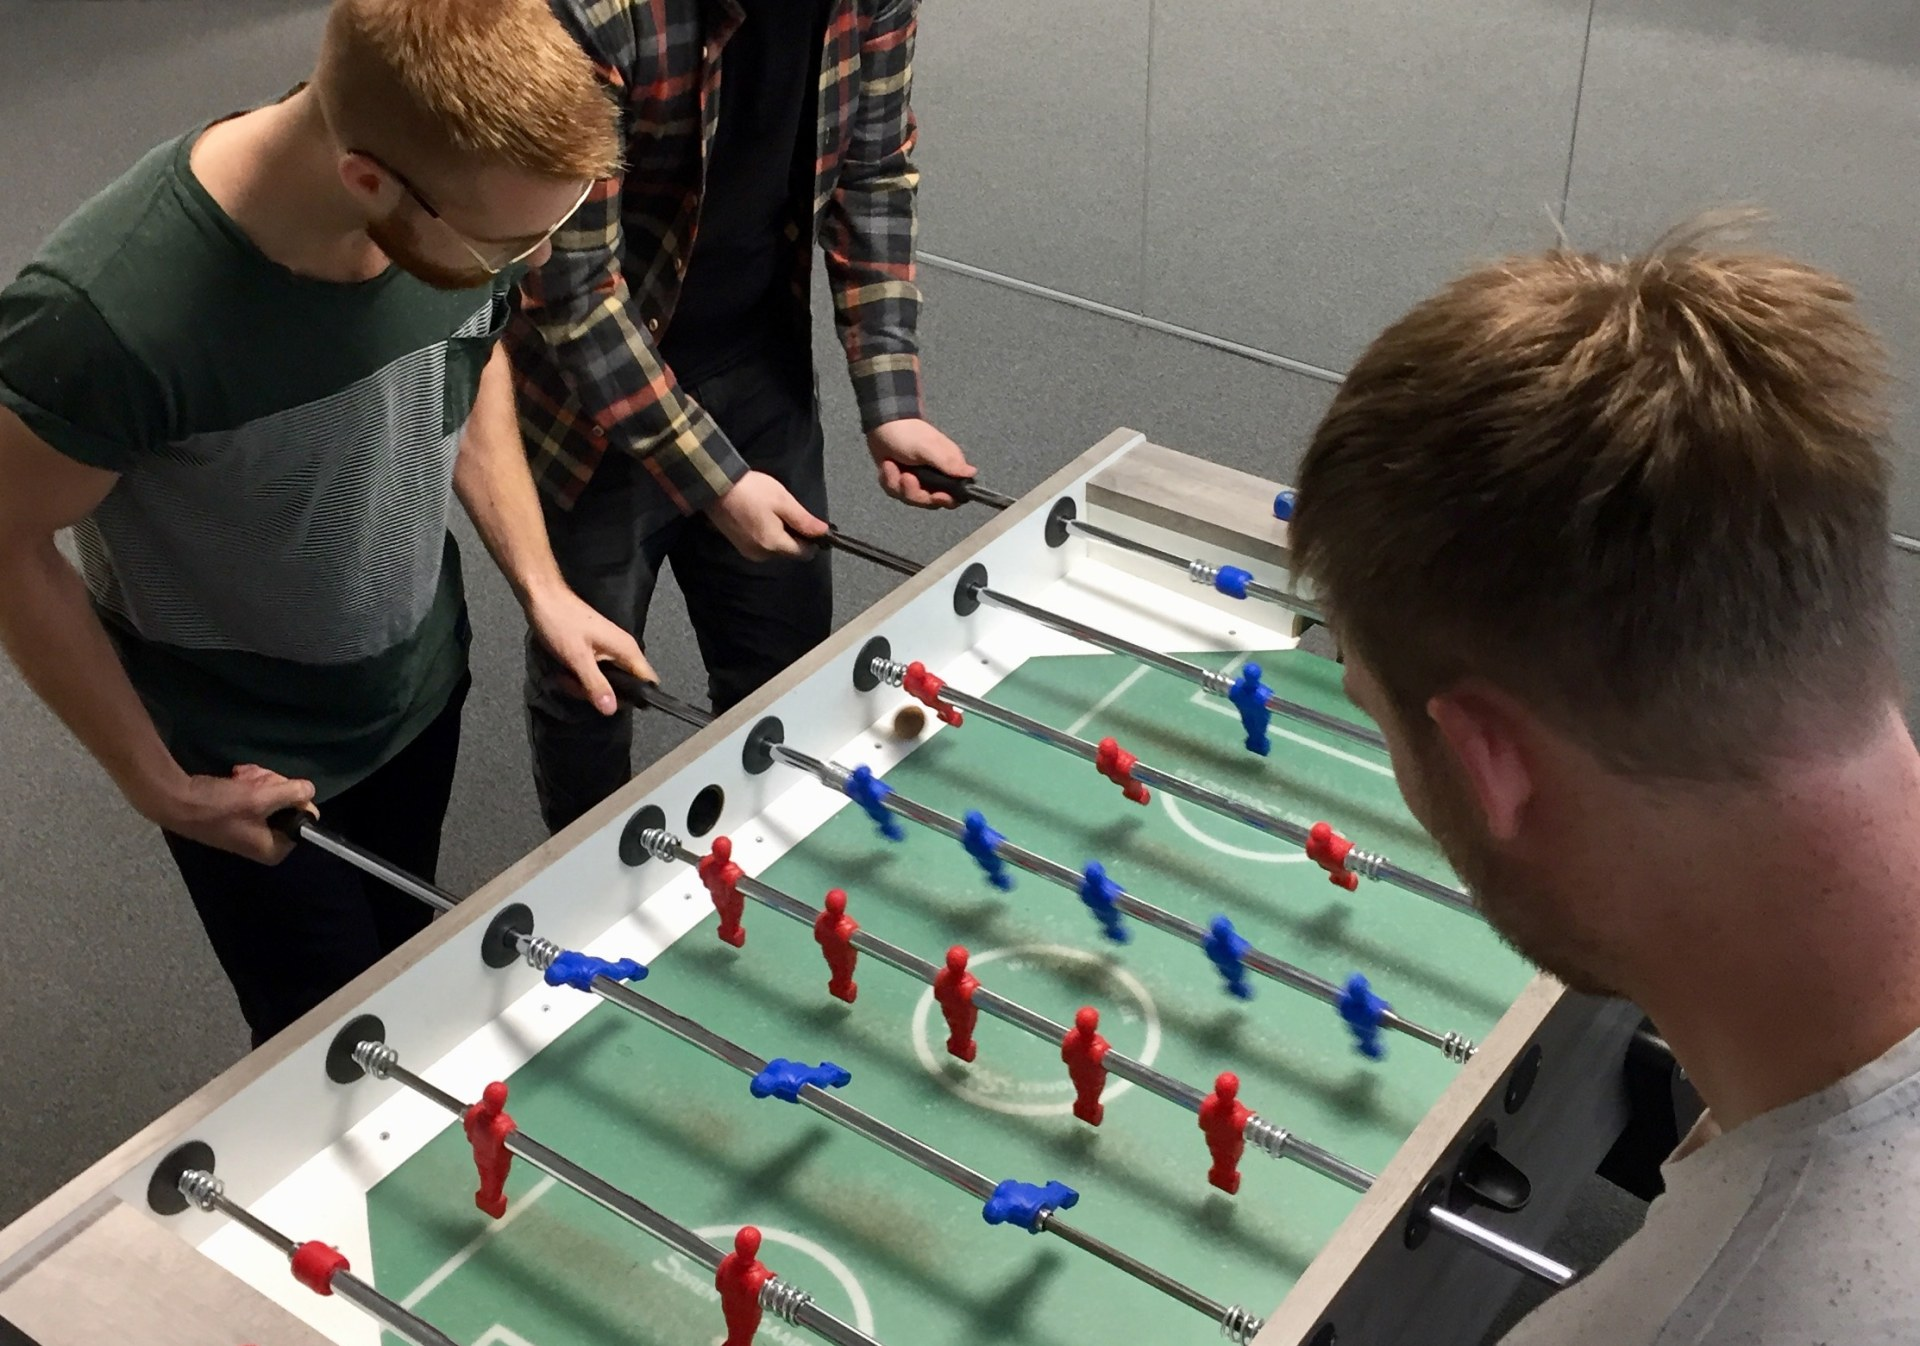 The boys playing Fussball